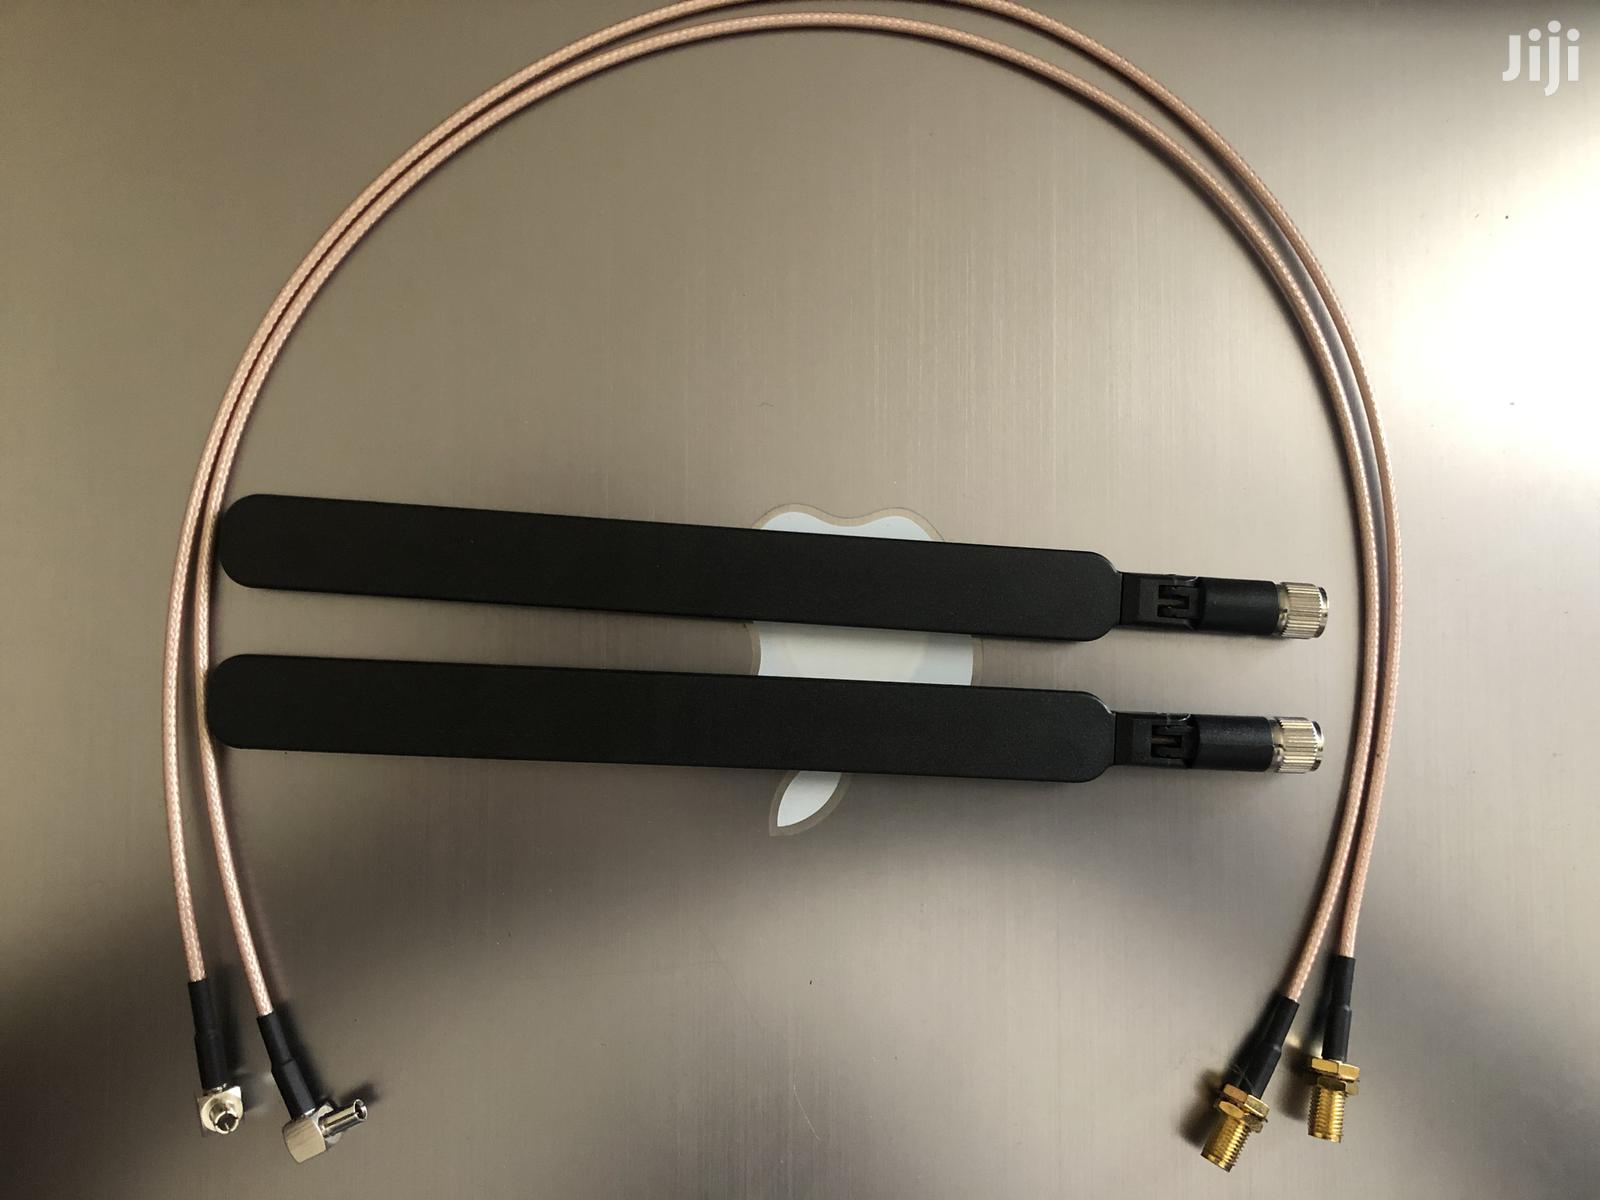 4G Mifi Modem External Antennas - TS9-SMA Connector | Networking Products for sale in Nairobi Central, Nairobi, Kenya